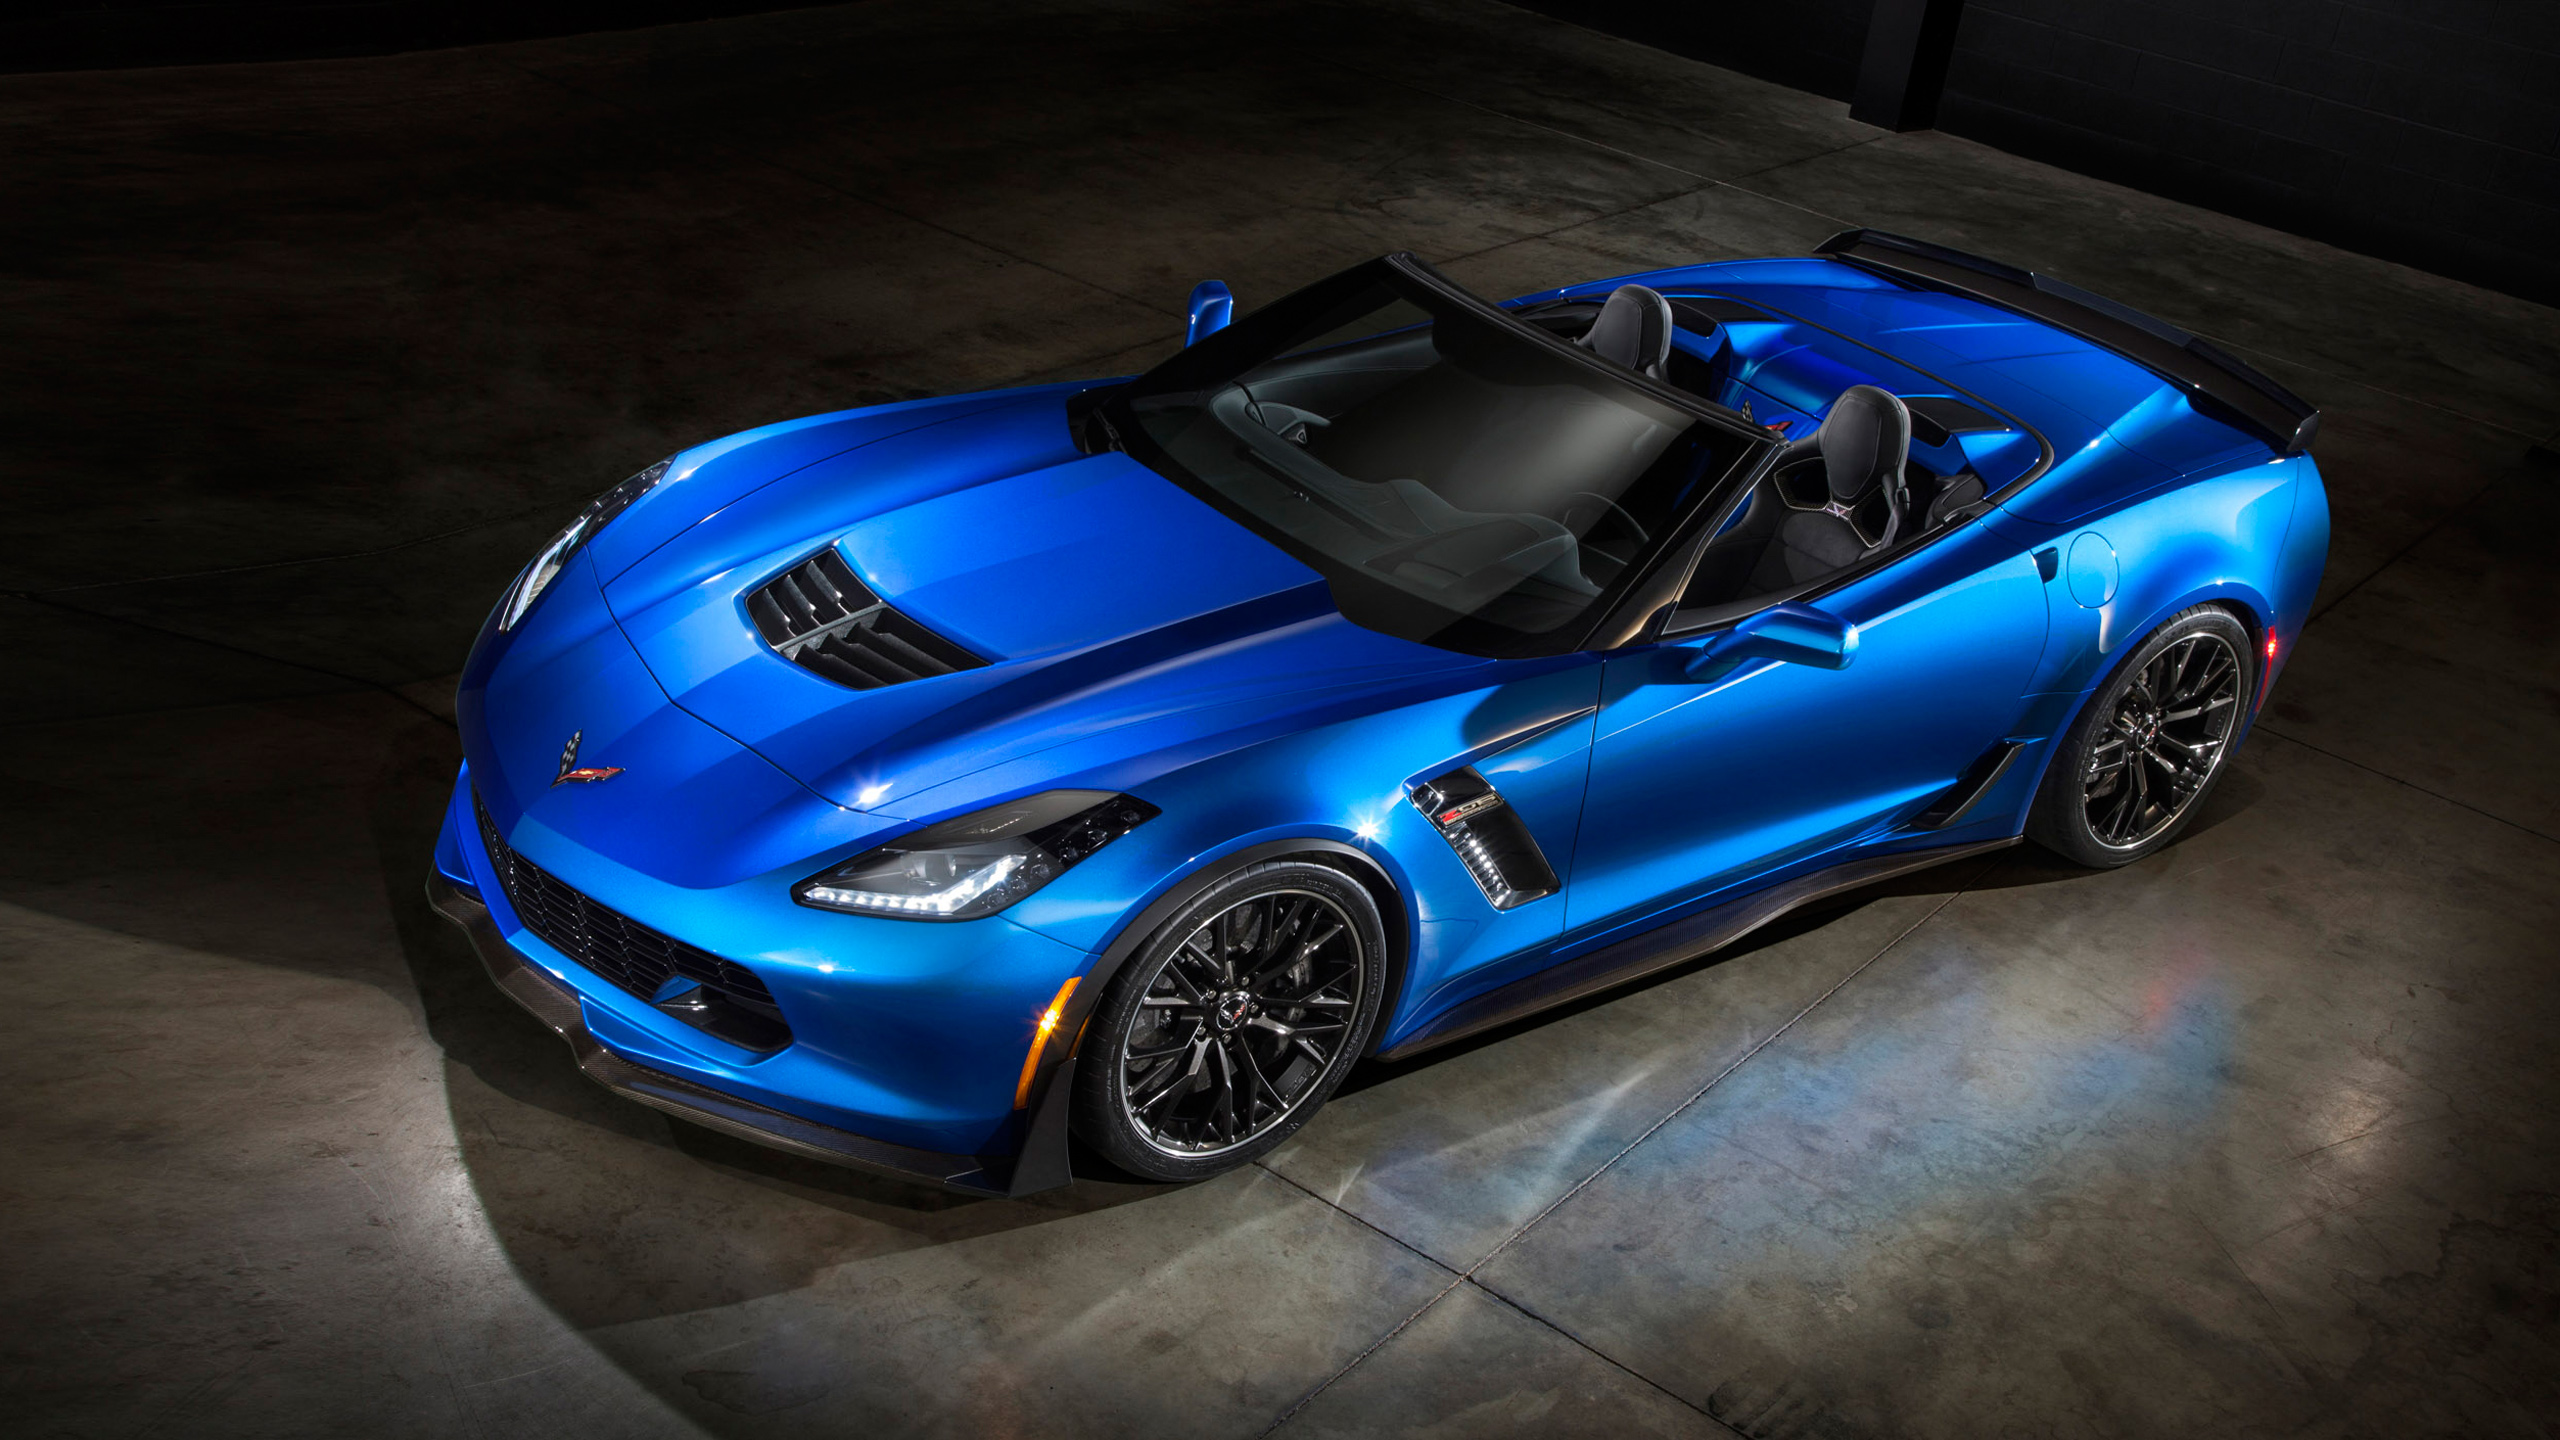 chevrolet corvette z06 convertible 2015 wallpaper hd car wallpapers. Cars Review. Best American Auto & Cars Review